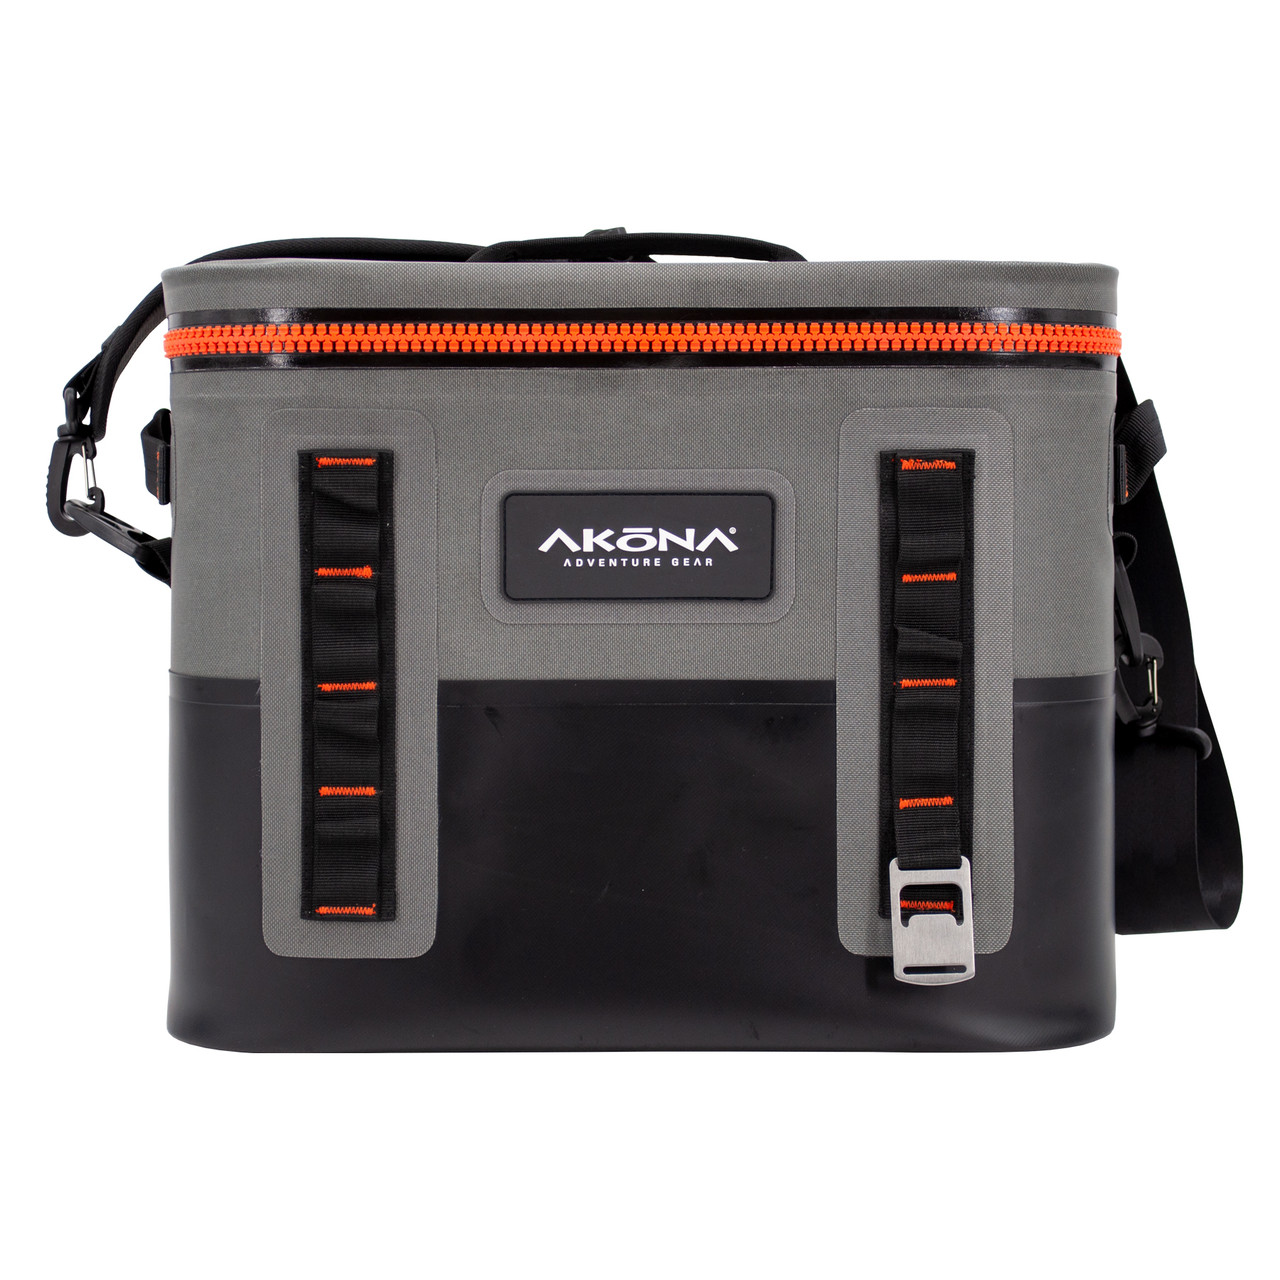 Akona Fargo Rectangle Soft Cooler for Camping, Boat, Beach, Kayak AKB910